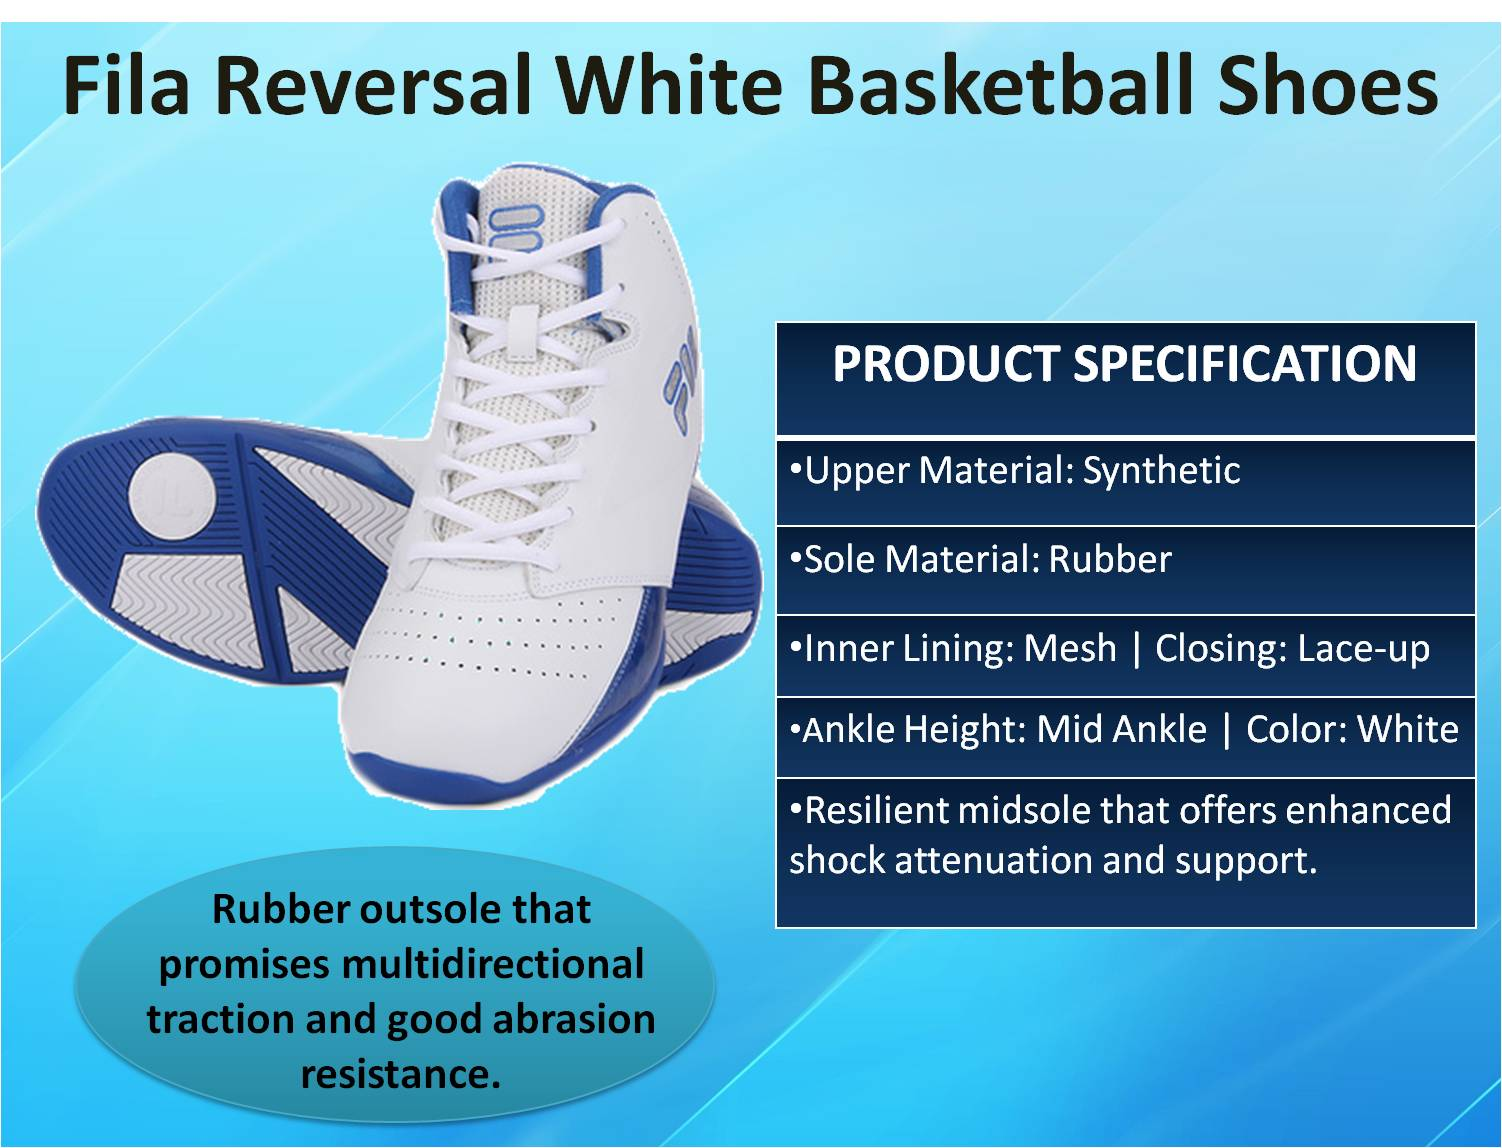 Fila Reversal White Basketball Shoes